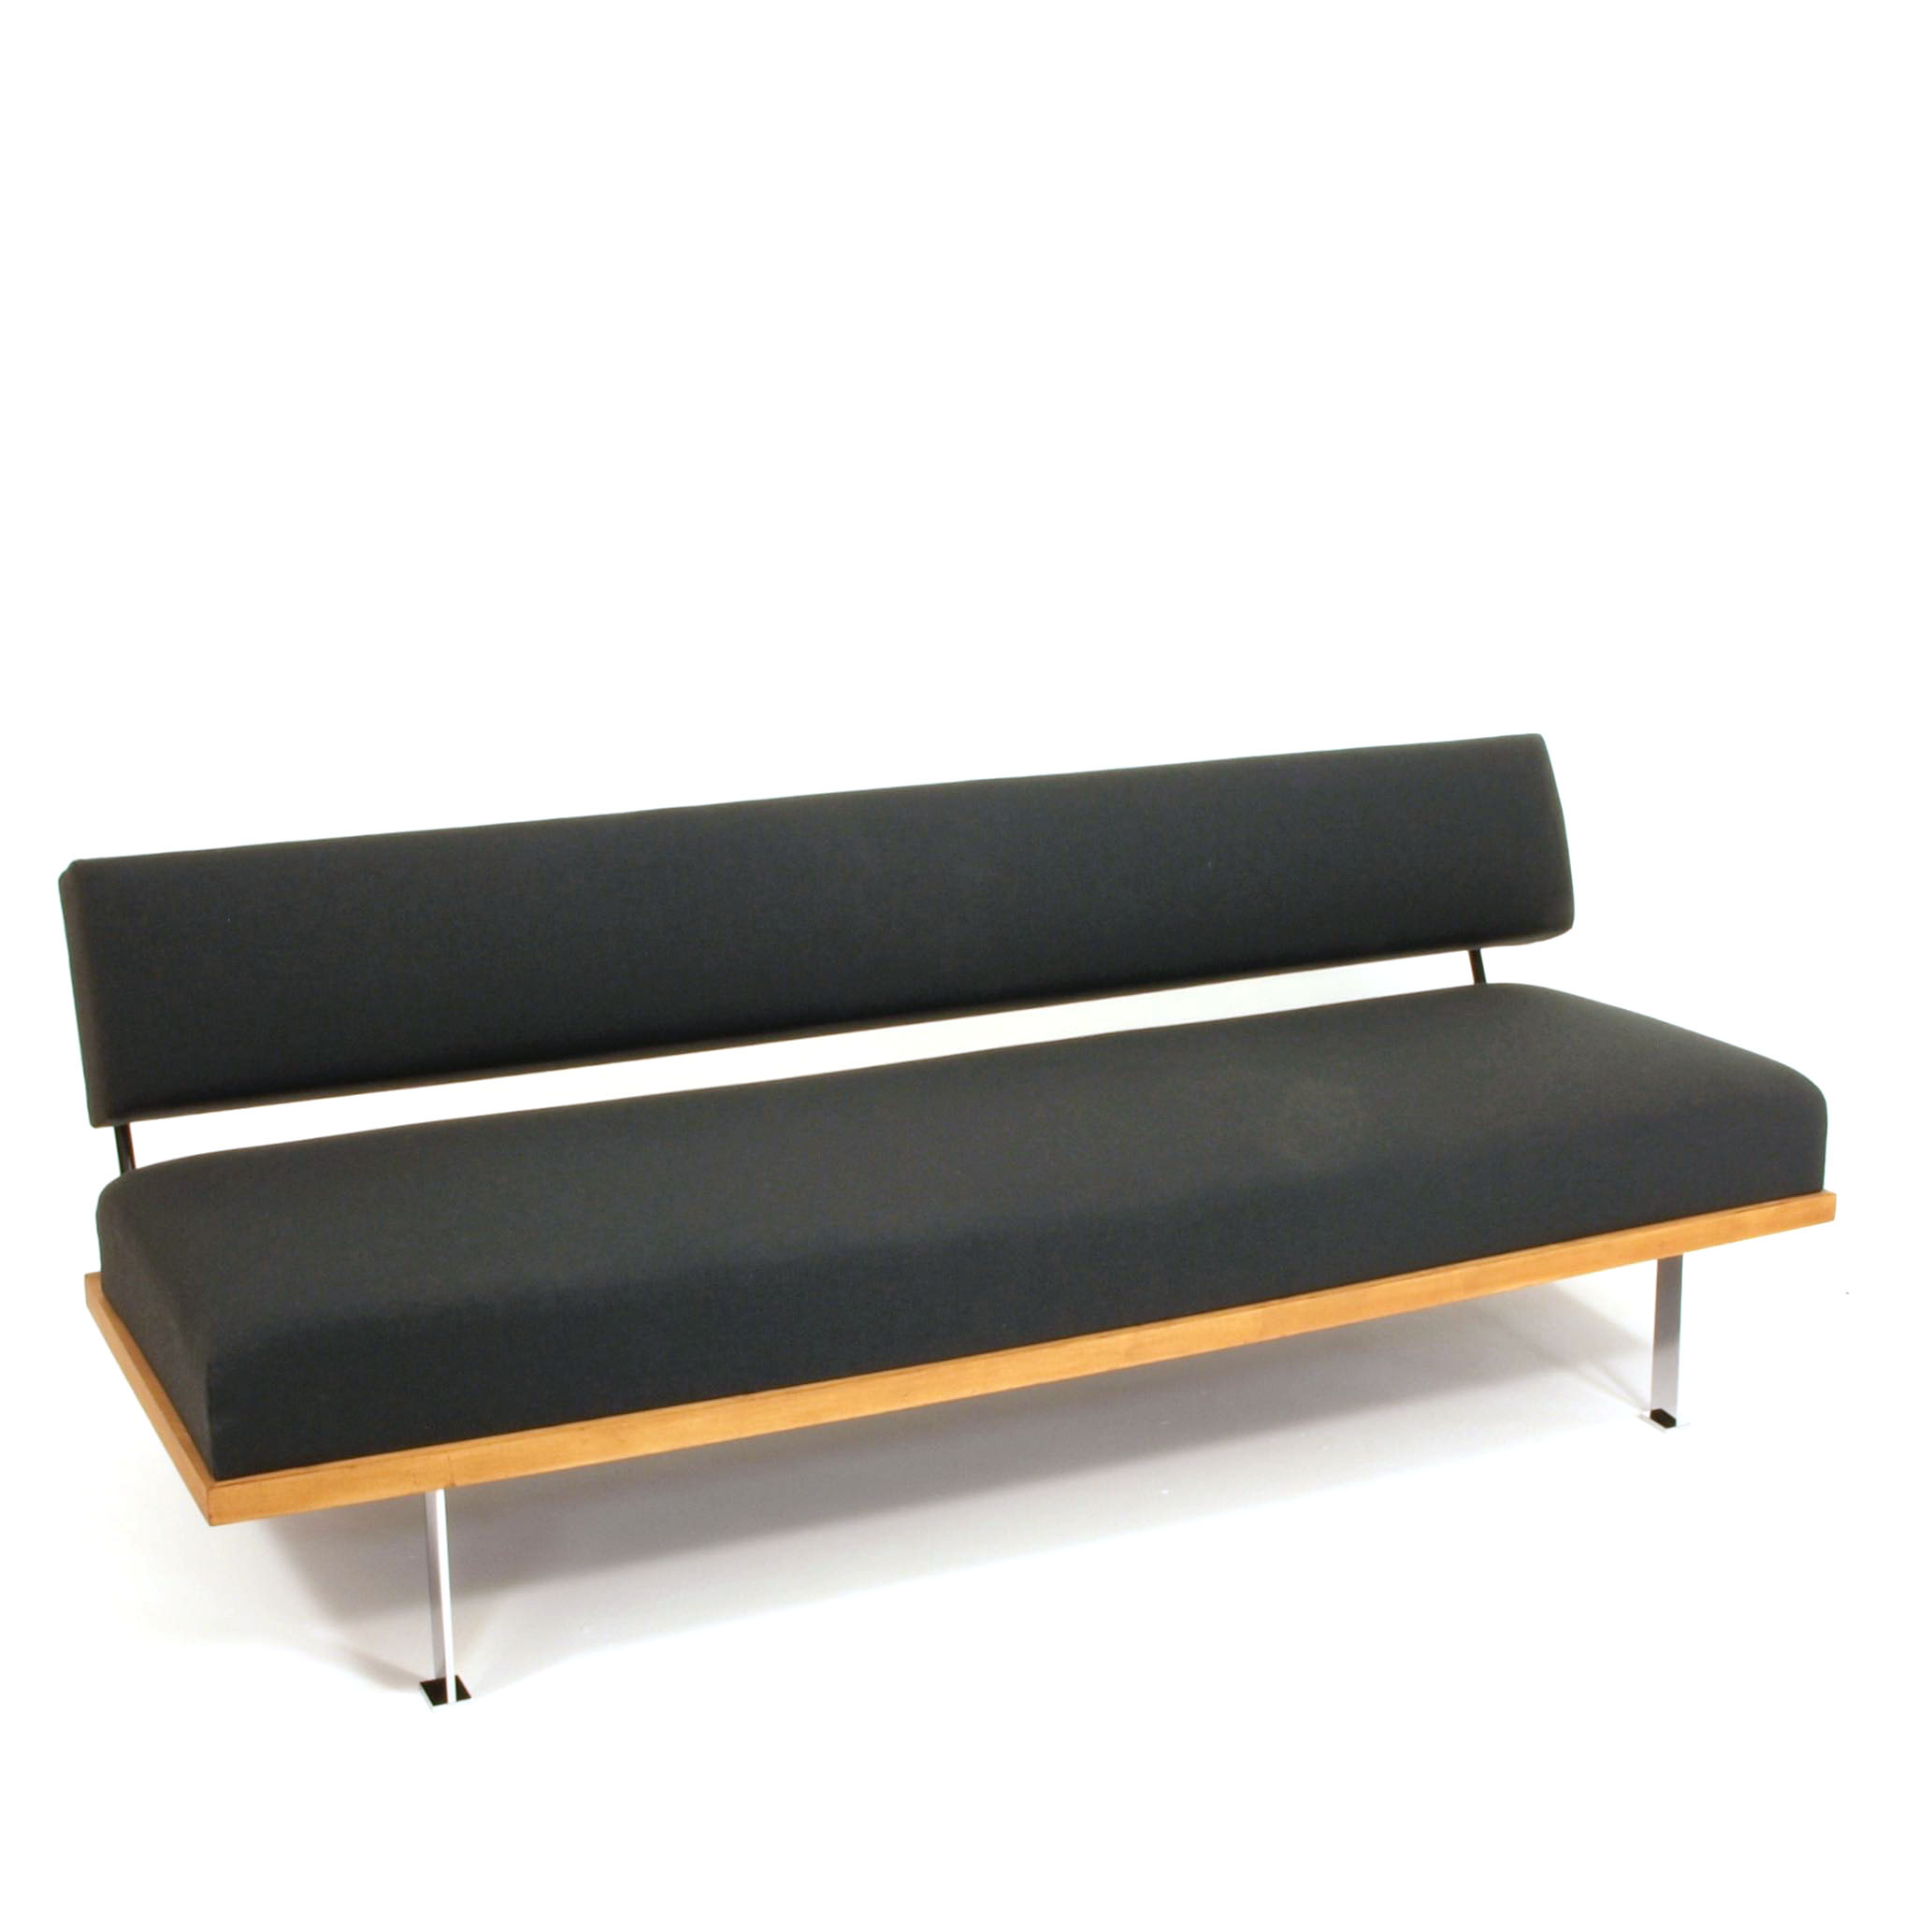 hugo peters sofa komplett restauriert m bel z rich vintagem bel. Black Bedroom Furniture Sets. Home Design Ideas